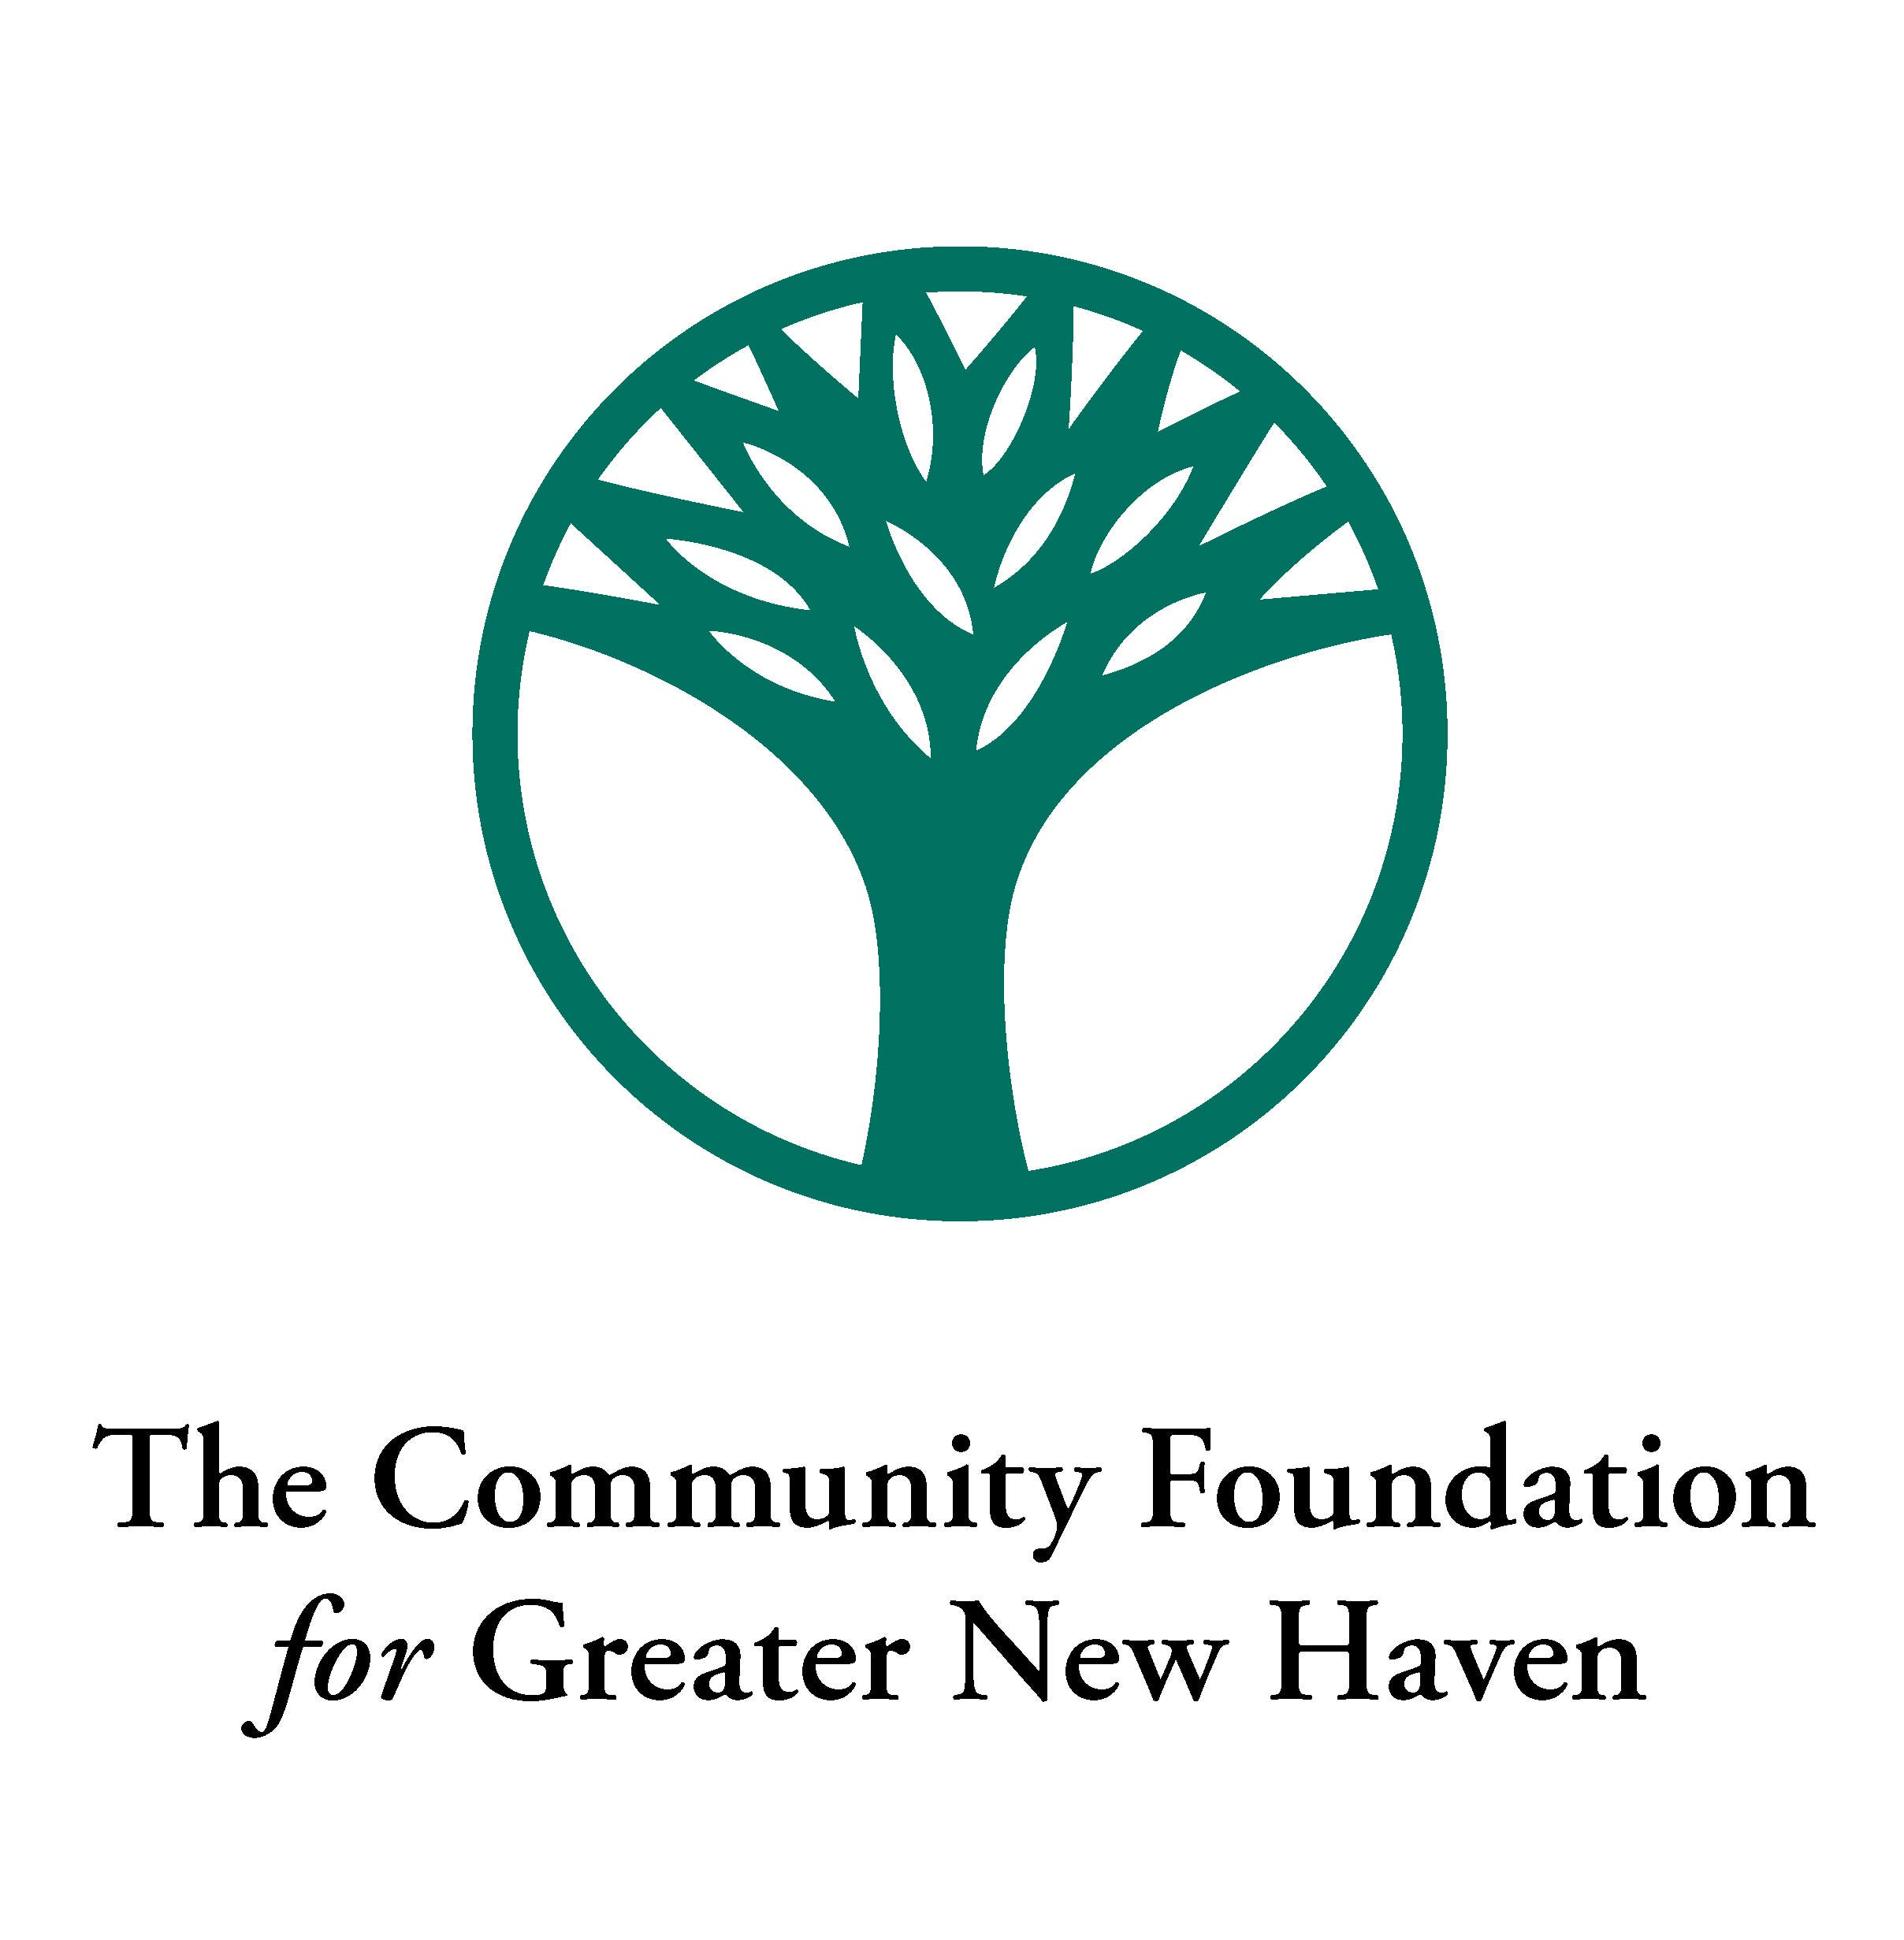 Community Foundation Awards Over $2 5 Million in Grants to